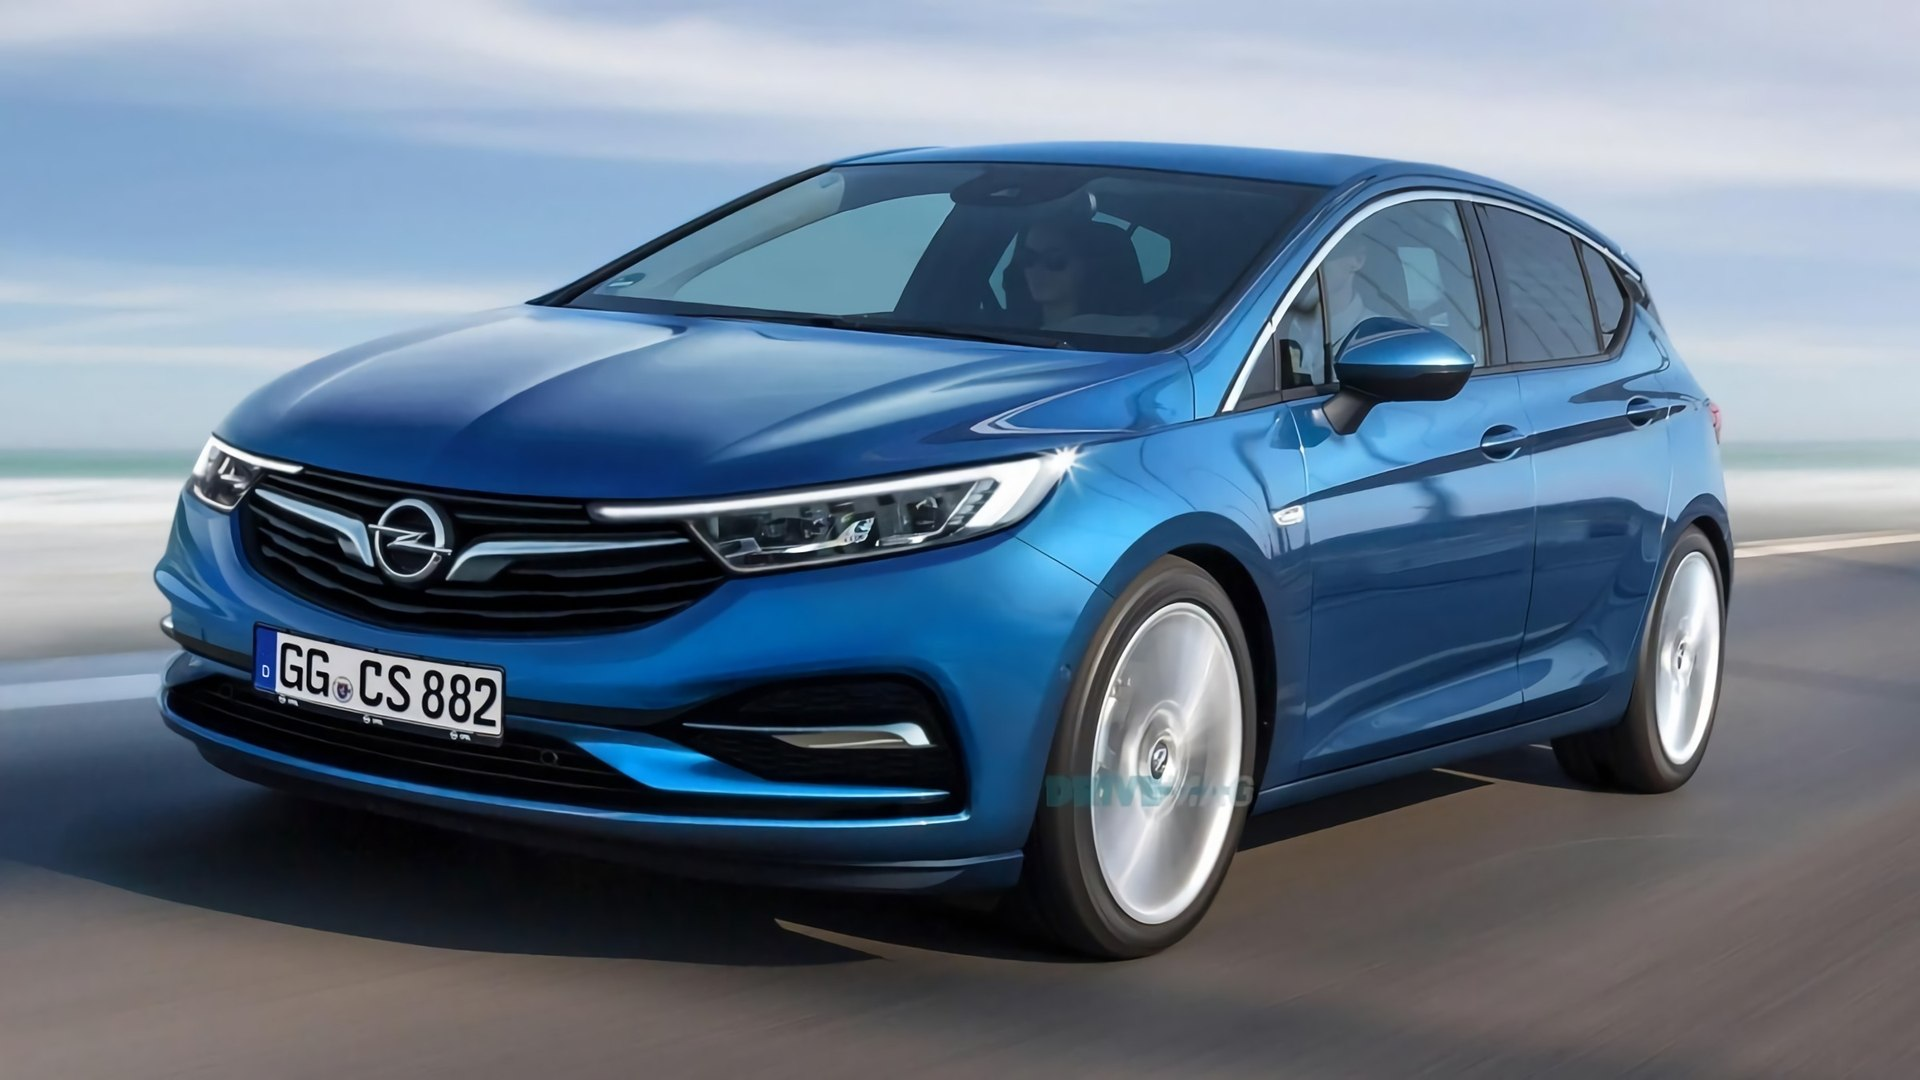 Bild von Opel Astra 2021: First Look & Photos